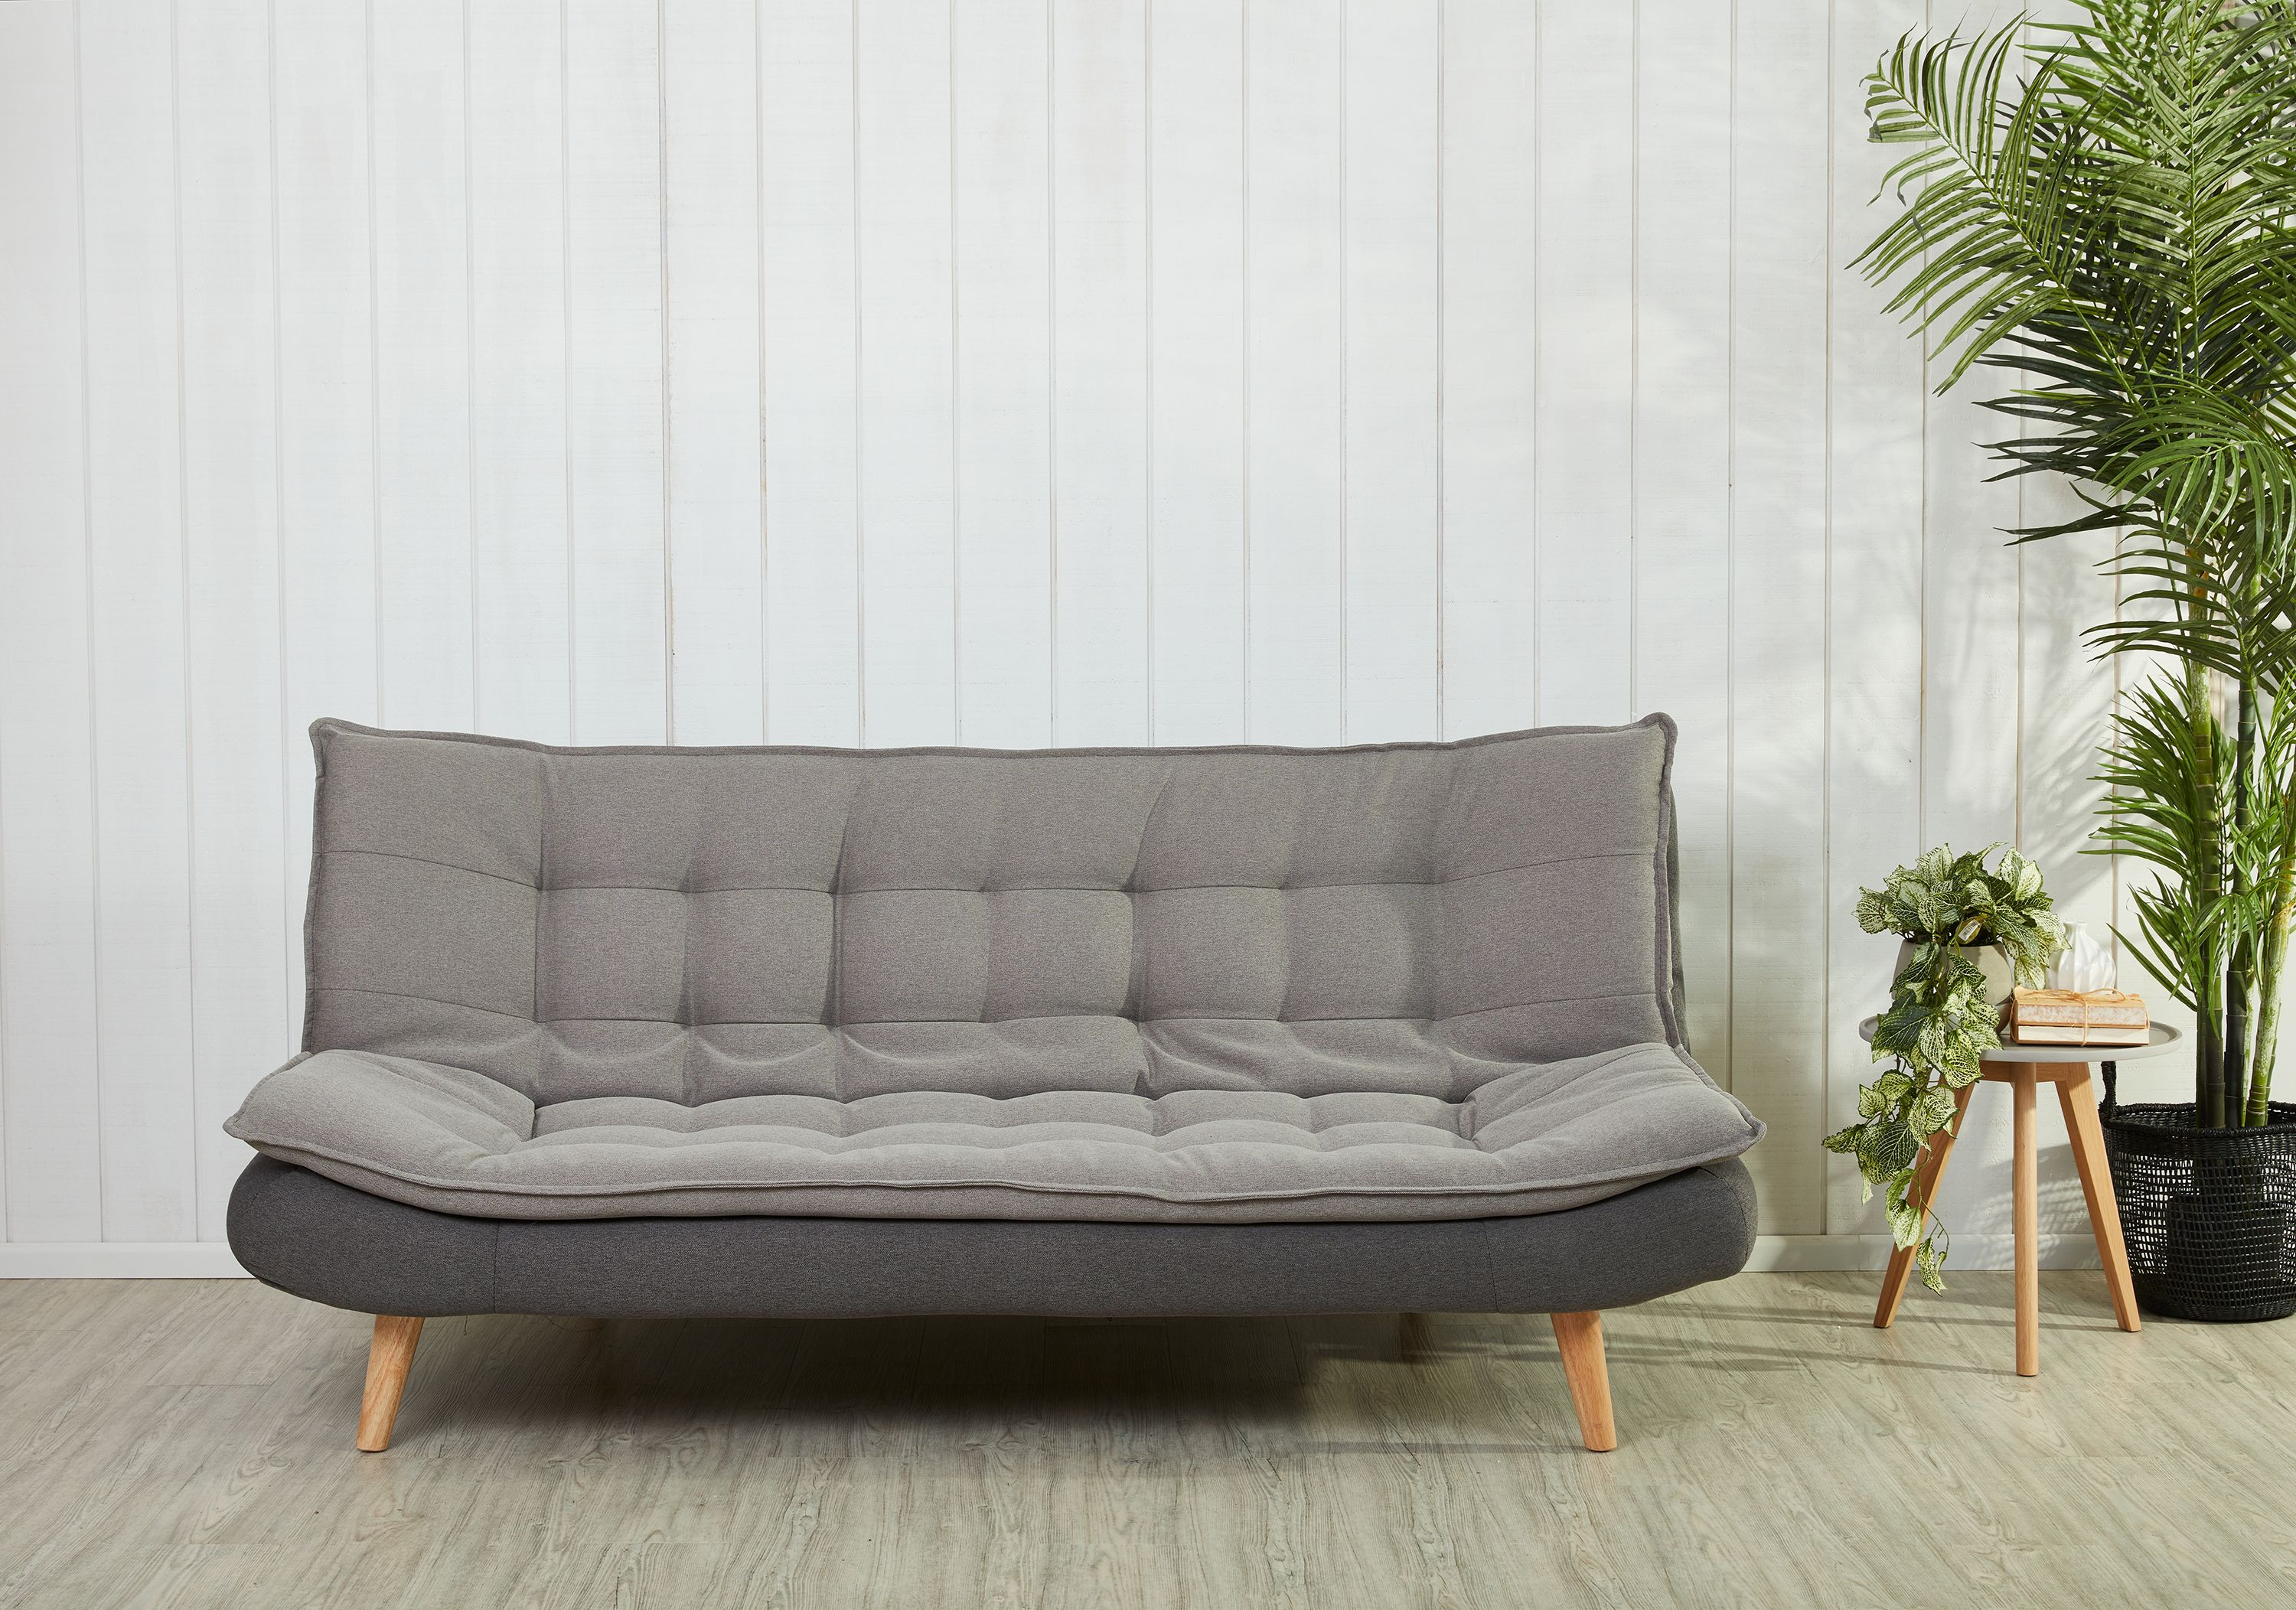 The Gozzano Sofa Bed Is A Modern Alternative To The Traditional Fold Out Sofa Bed The Gozzano Is Just As Comfortable I Stressless Furniture Furniture Sofa Bed